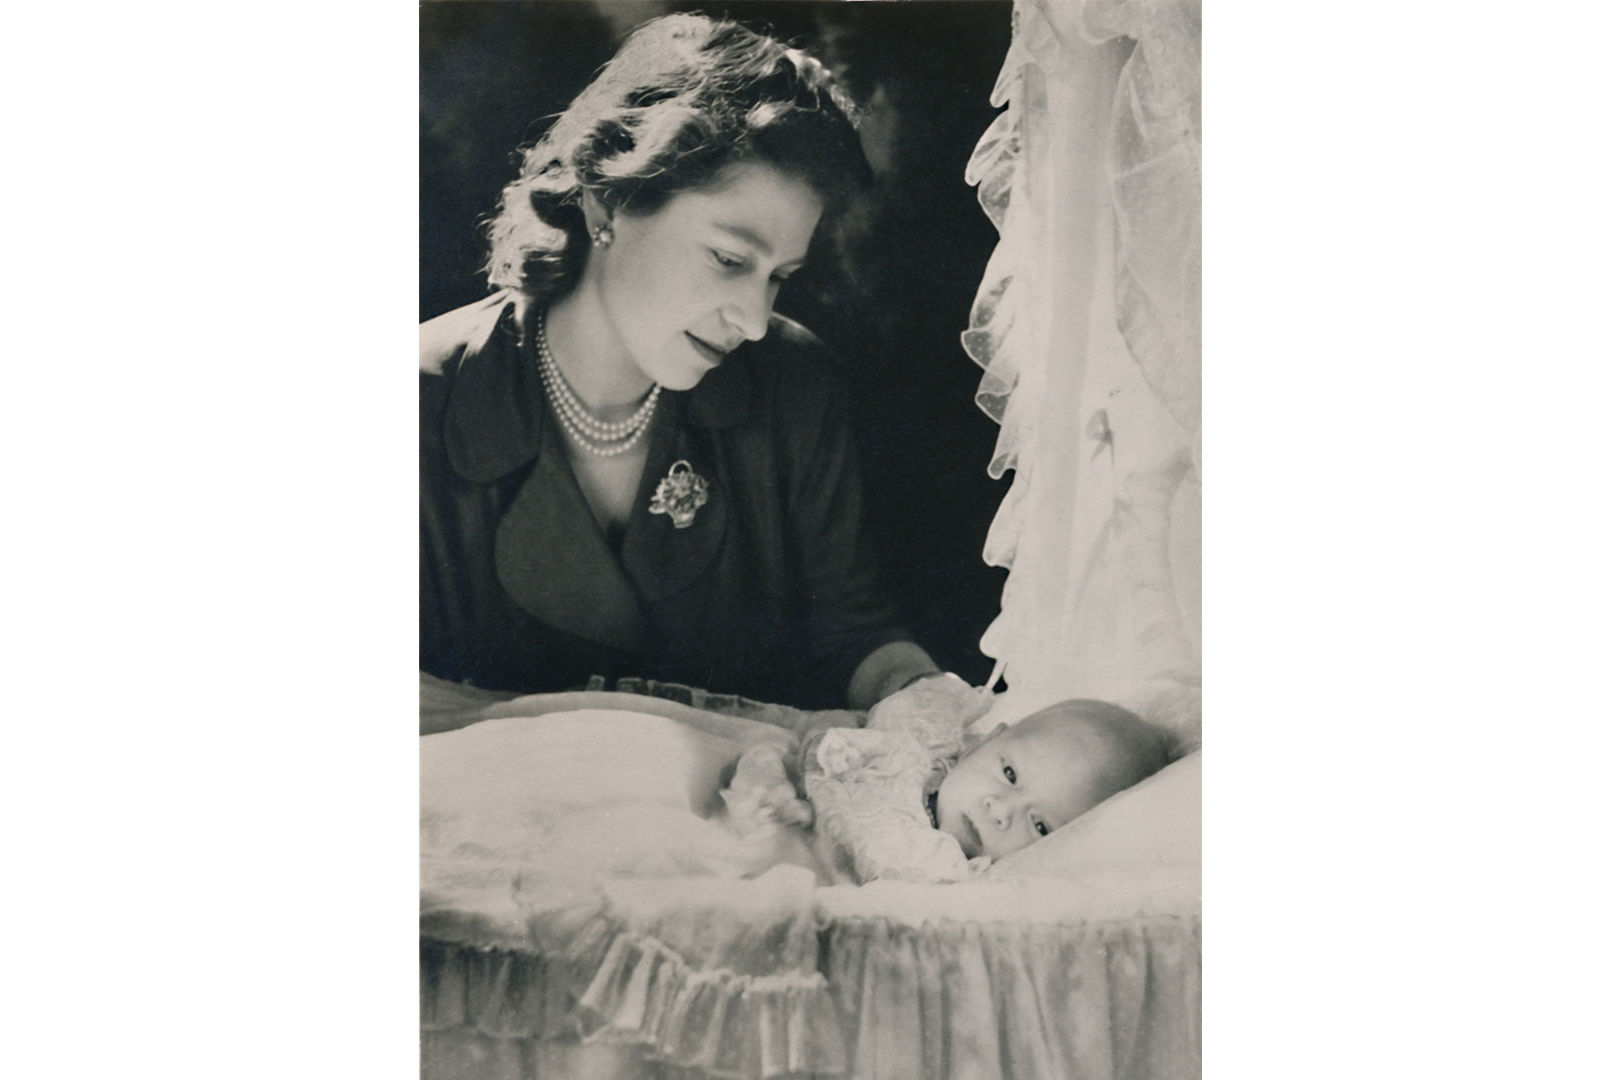 WATCH: The Weird Way Queen Elizabeth's First Pregnancy Was Announced